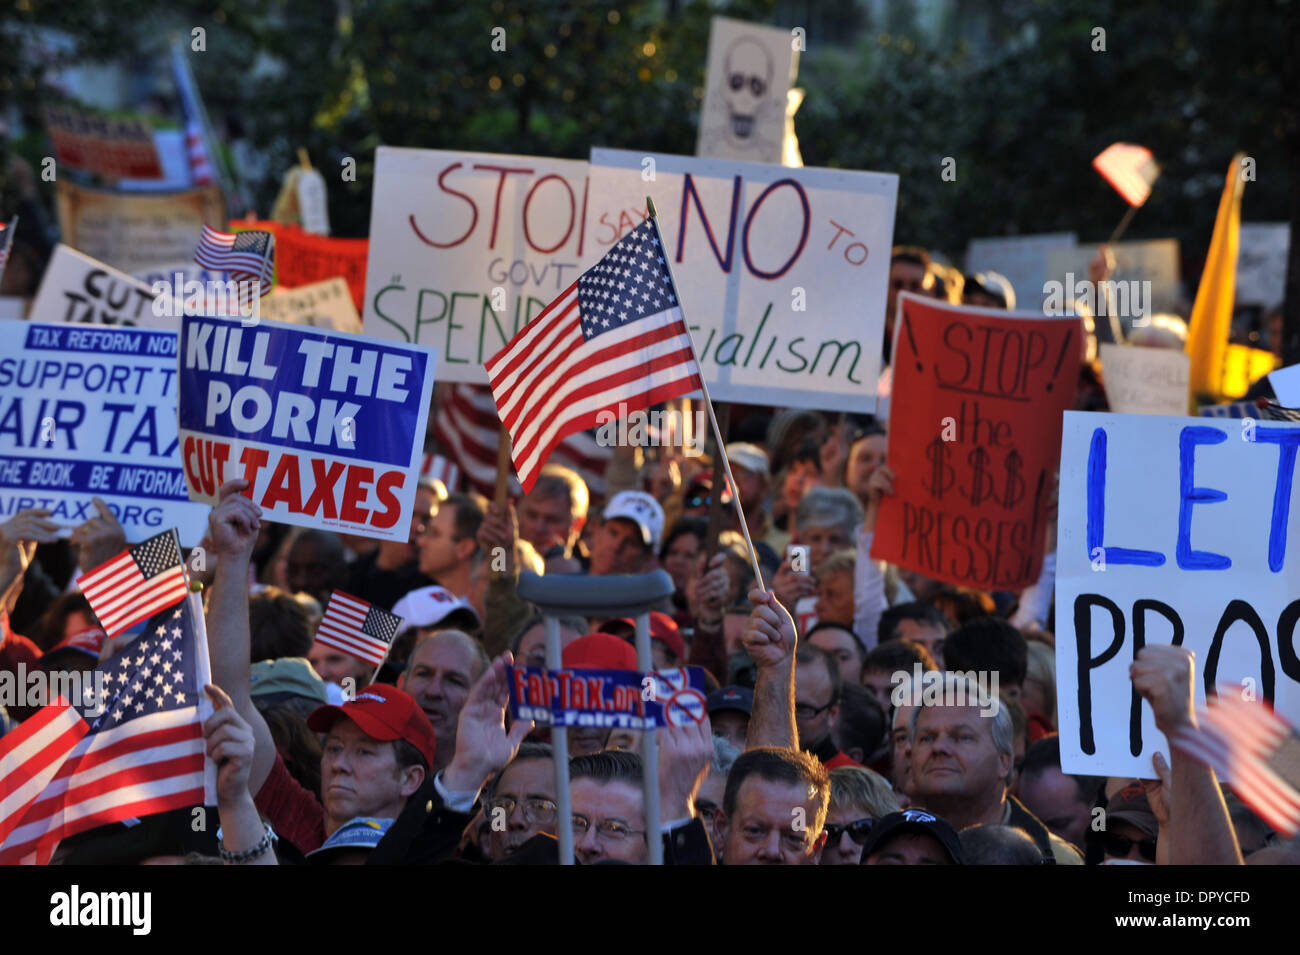 Apr 15, 2009 - Atlanta, Georgia, USA - Nearly 15,000 protesters gather at the statehouse in Atlanta as part of nationwide 'tea party' protests of taxation and government spending. The rallies were named after the original Boston Tea Party. (Credit Image: © Robin Nelson/ZUMA Press) - Stock Image